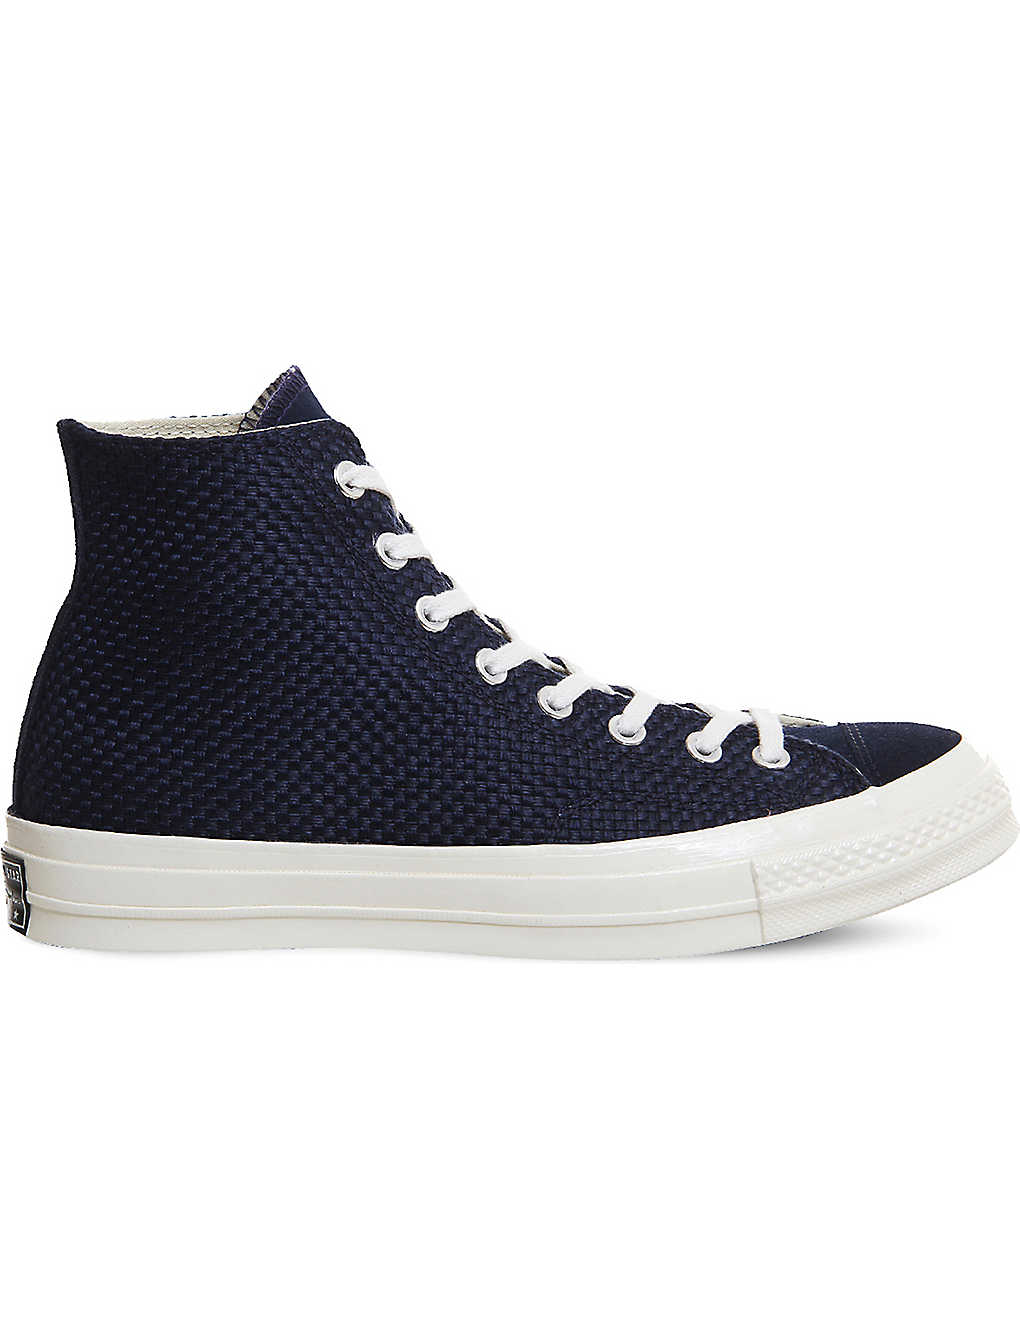 more photos de2ef b73fa CONVERSE All Star 70 woven canvas and suede high-top trainers